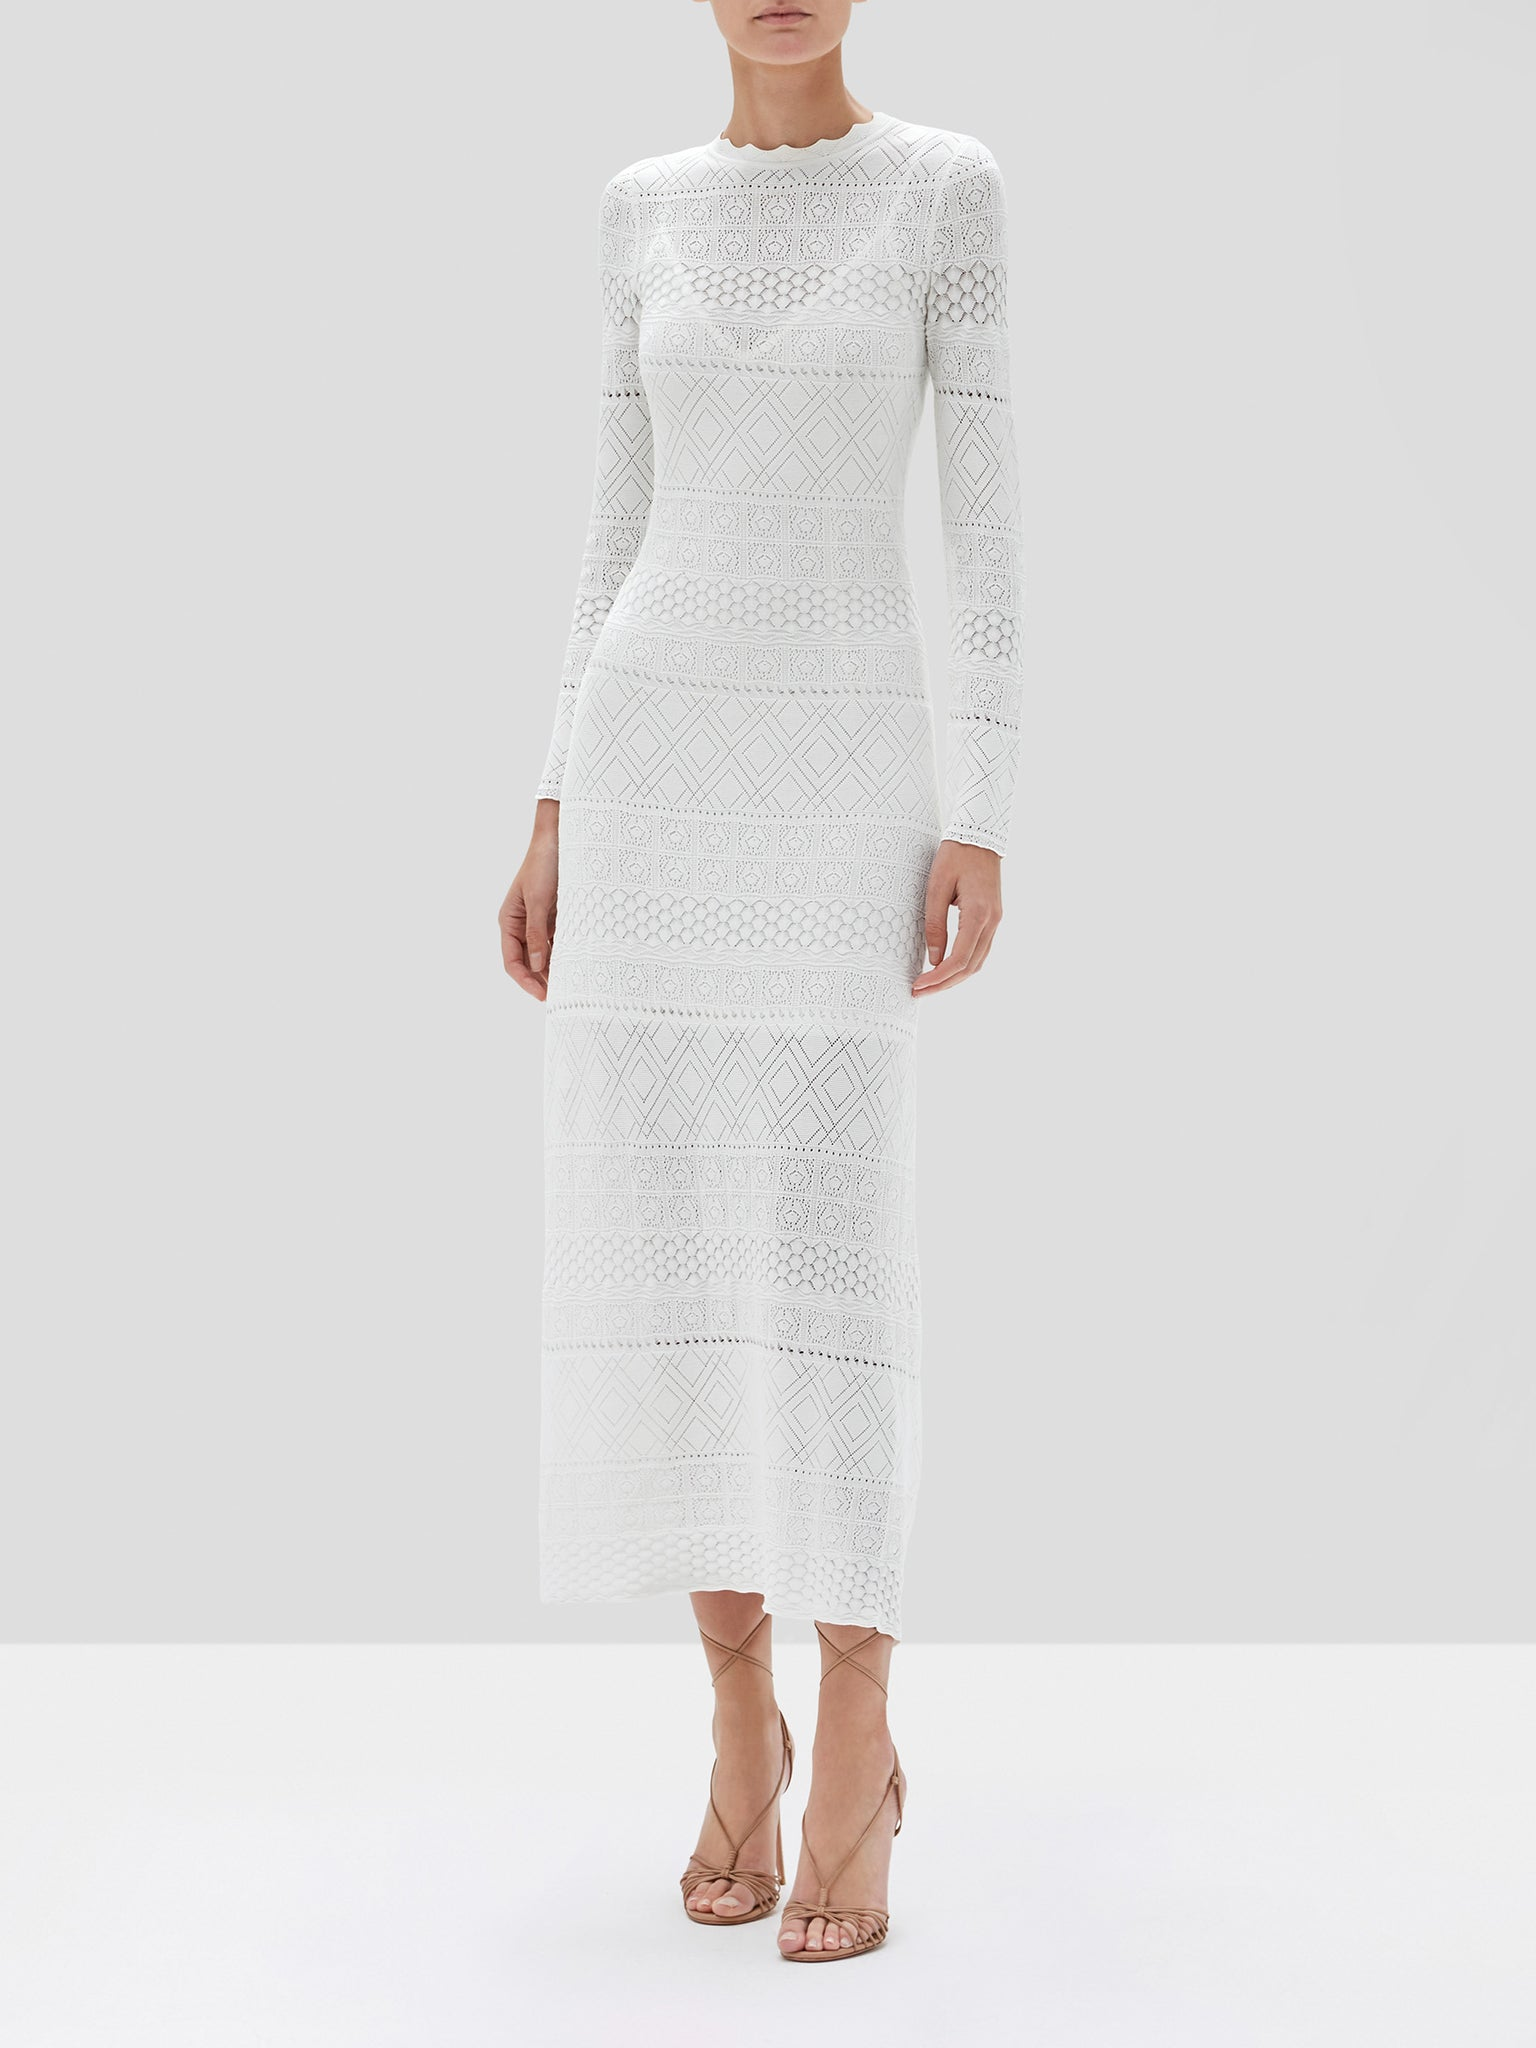 Volta dress in white front